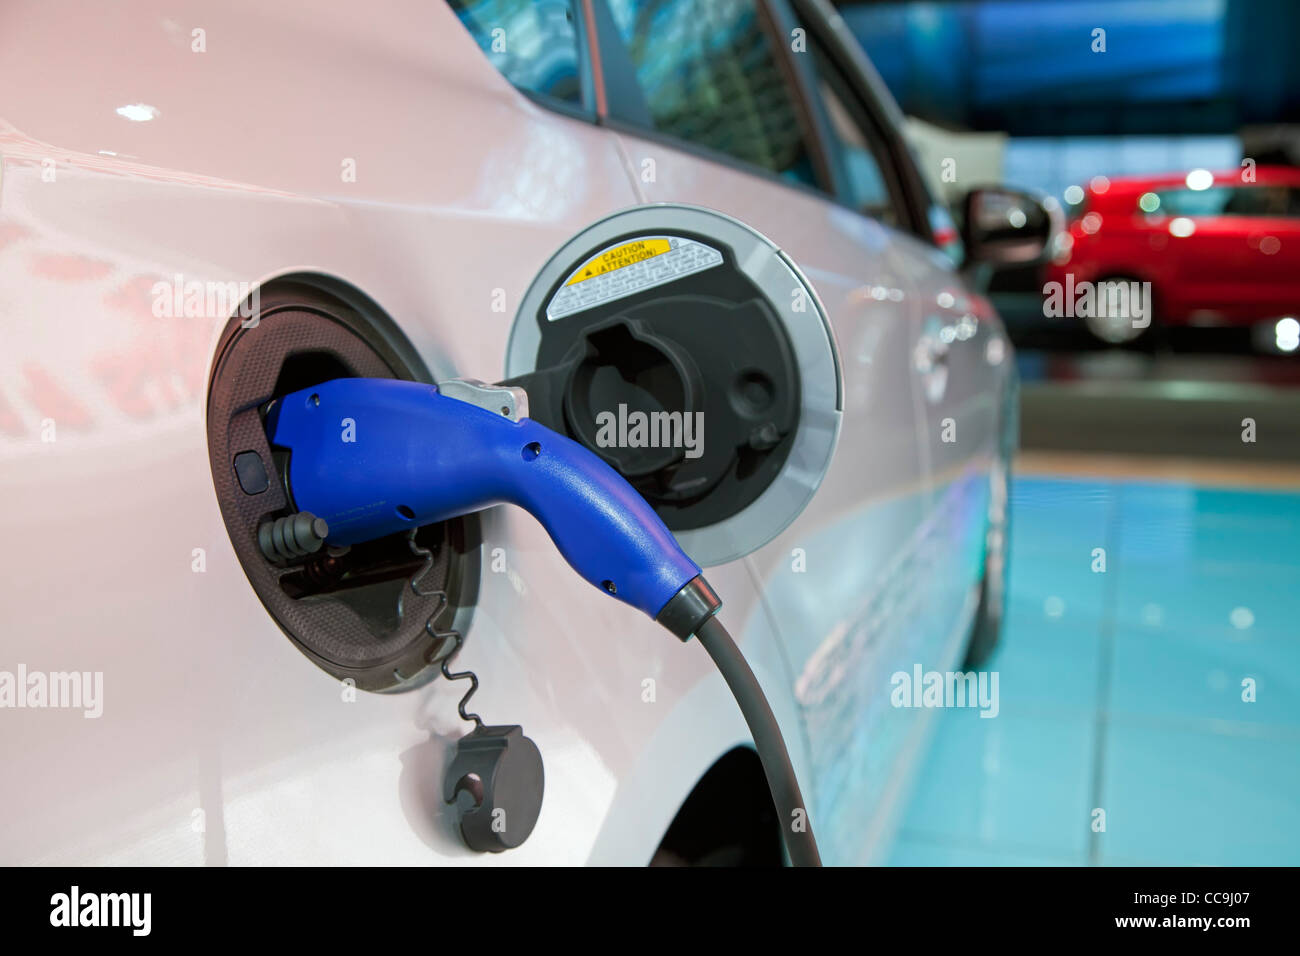 Detroit, Michigan - The 2012 Toyota Prius plug-in hybrid on display at the North American International Auto Show. - Stock Image